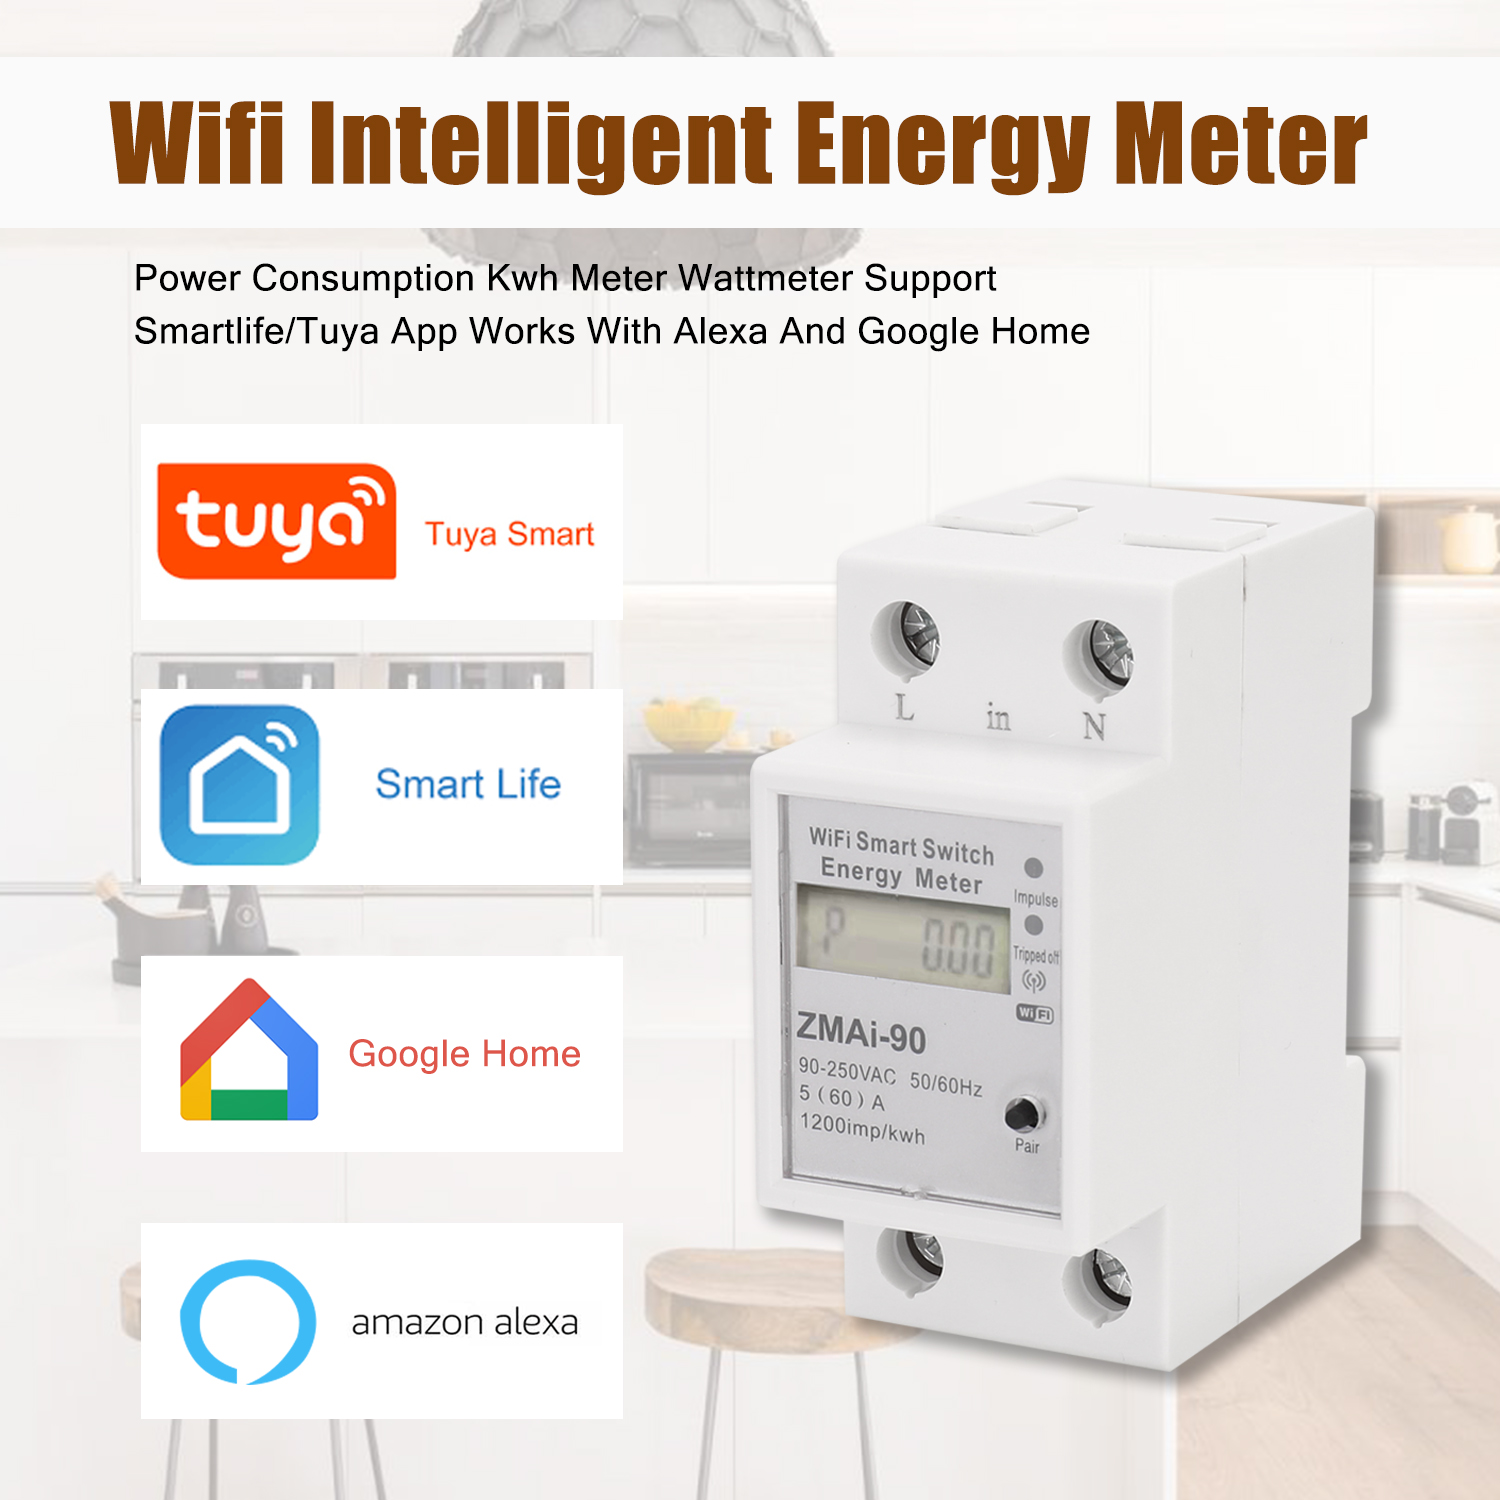 Single Phase Din Rail Wifi Smart Energy Meter Power Consumption Kwh Meter Wattmeter Support Smartlife/Tuya App Alexa Google Home